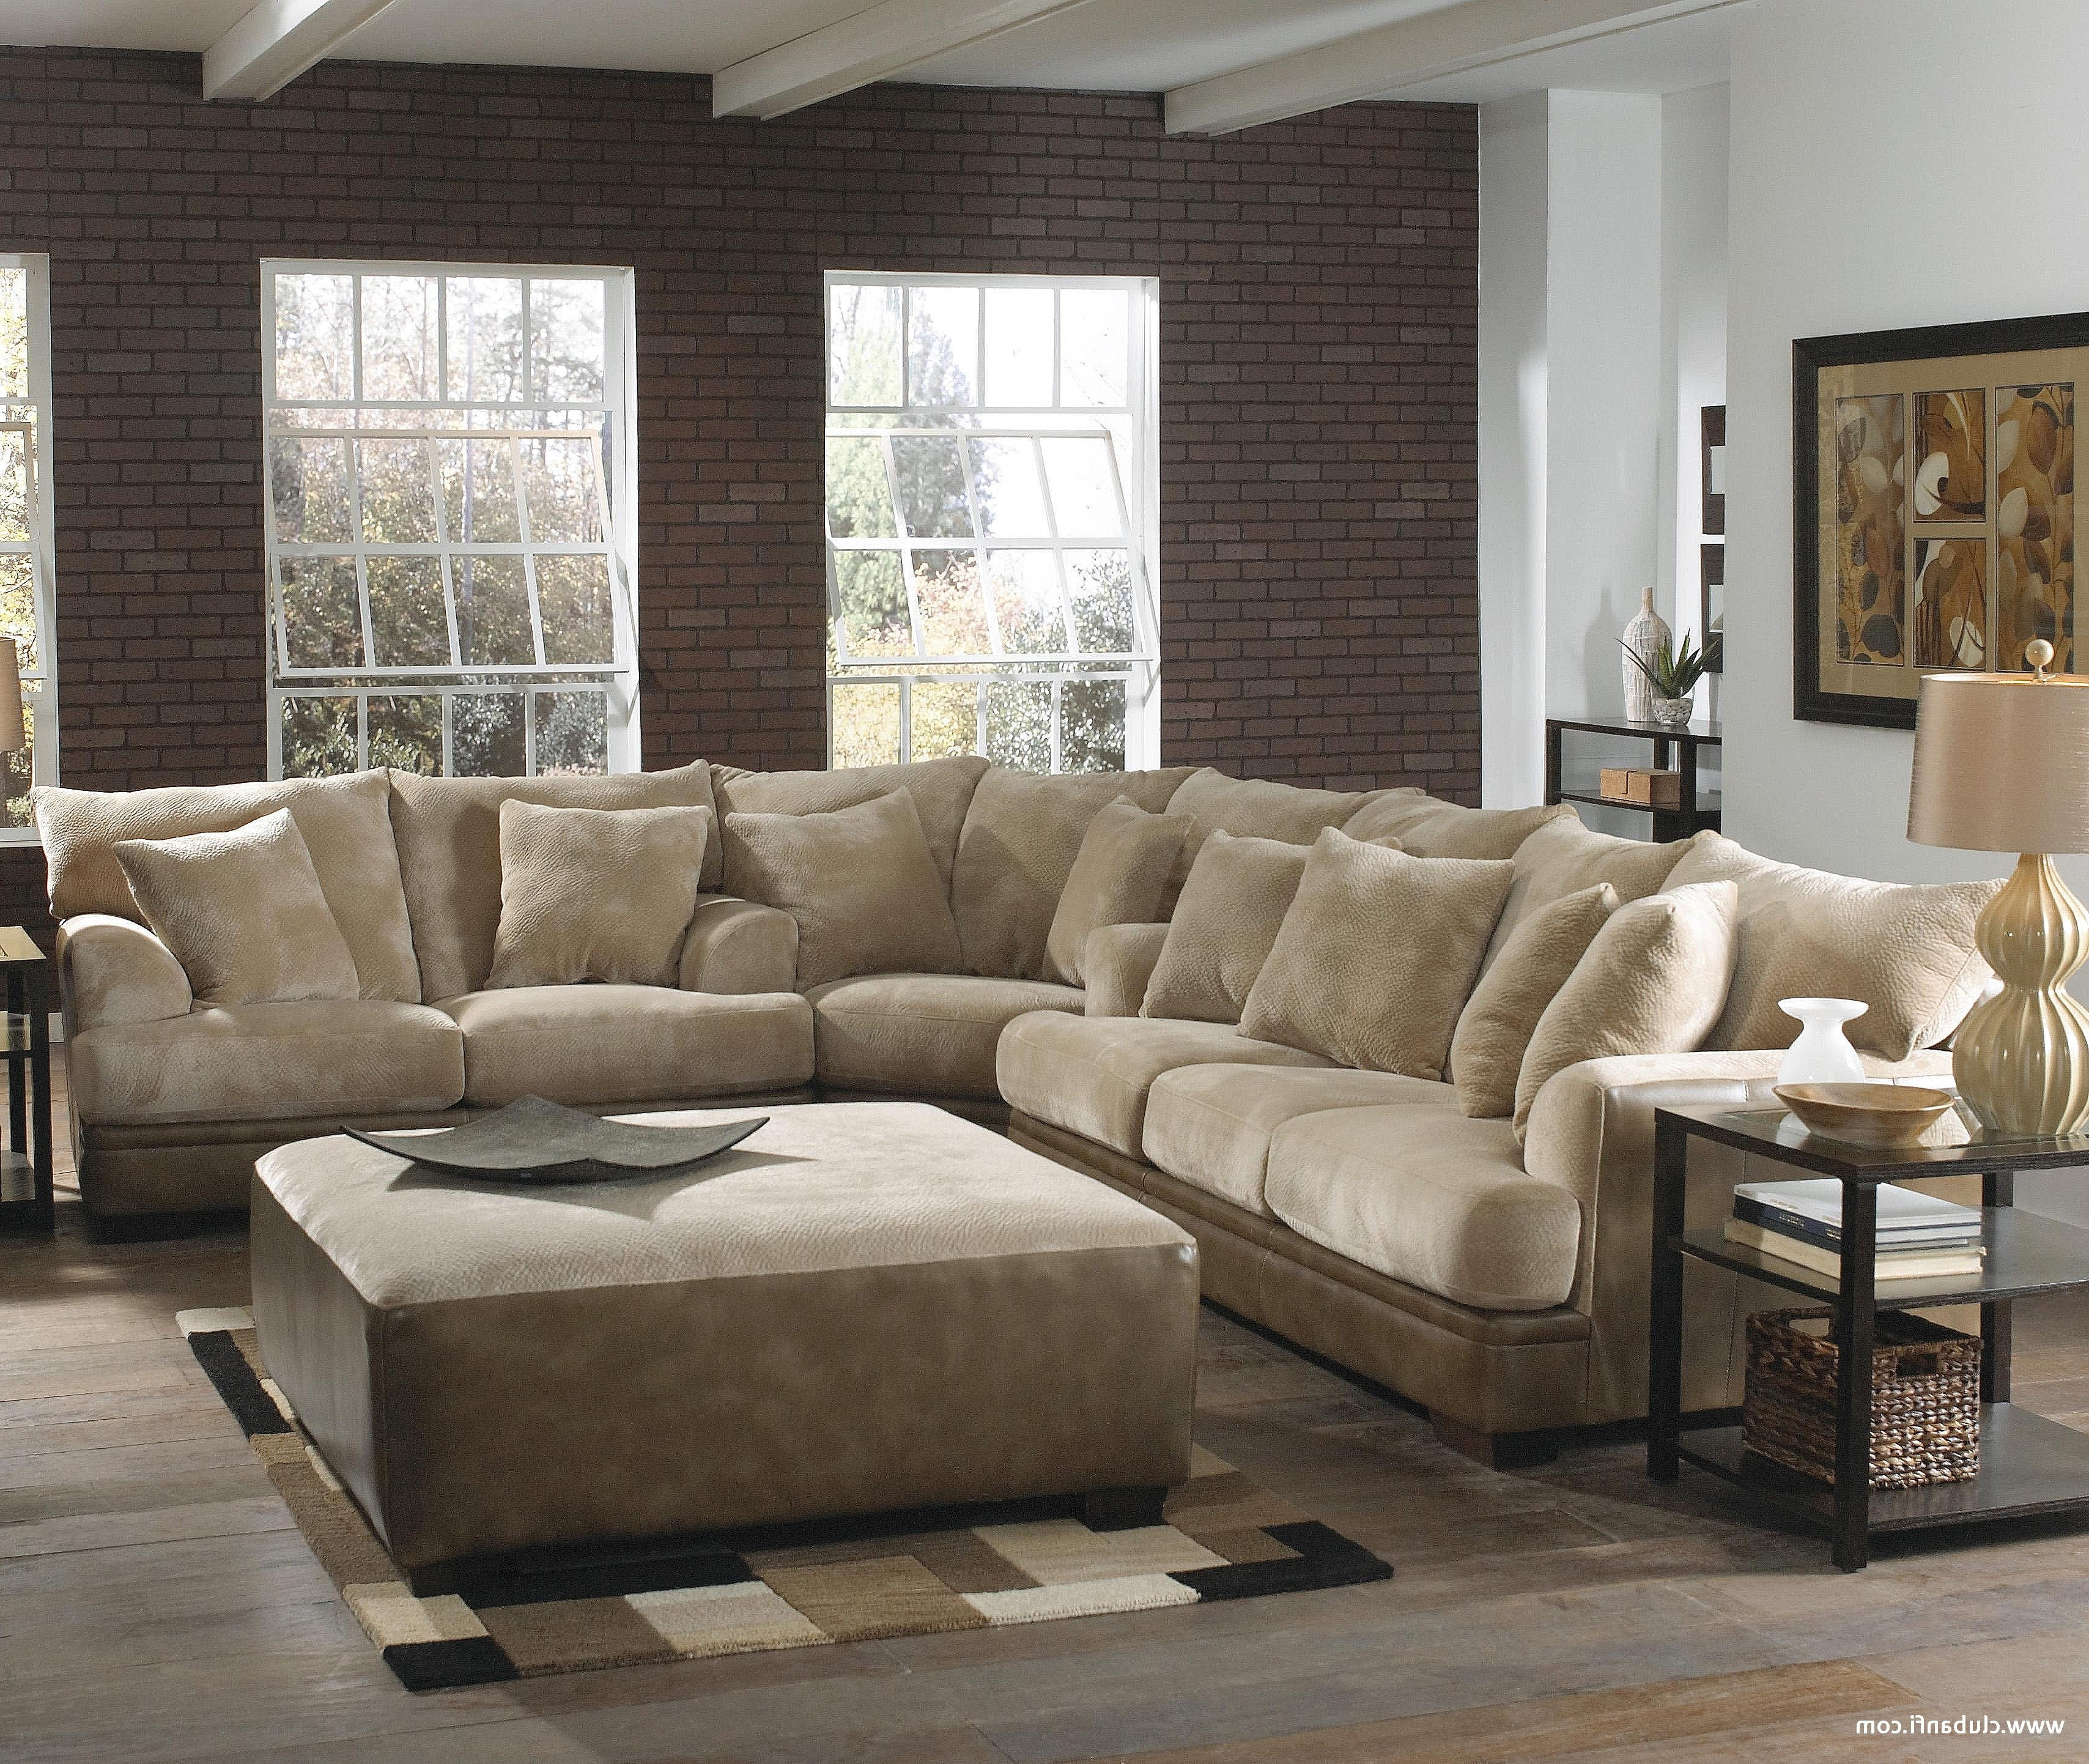 Deep Seating Sectional Sofas Within Current Picture 6 Of 34 – Plush Sectional Sofas Luxury Living Room Deep (View 8 of 15)